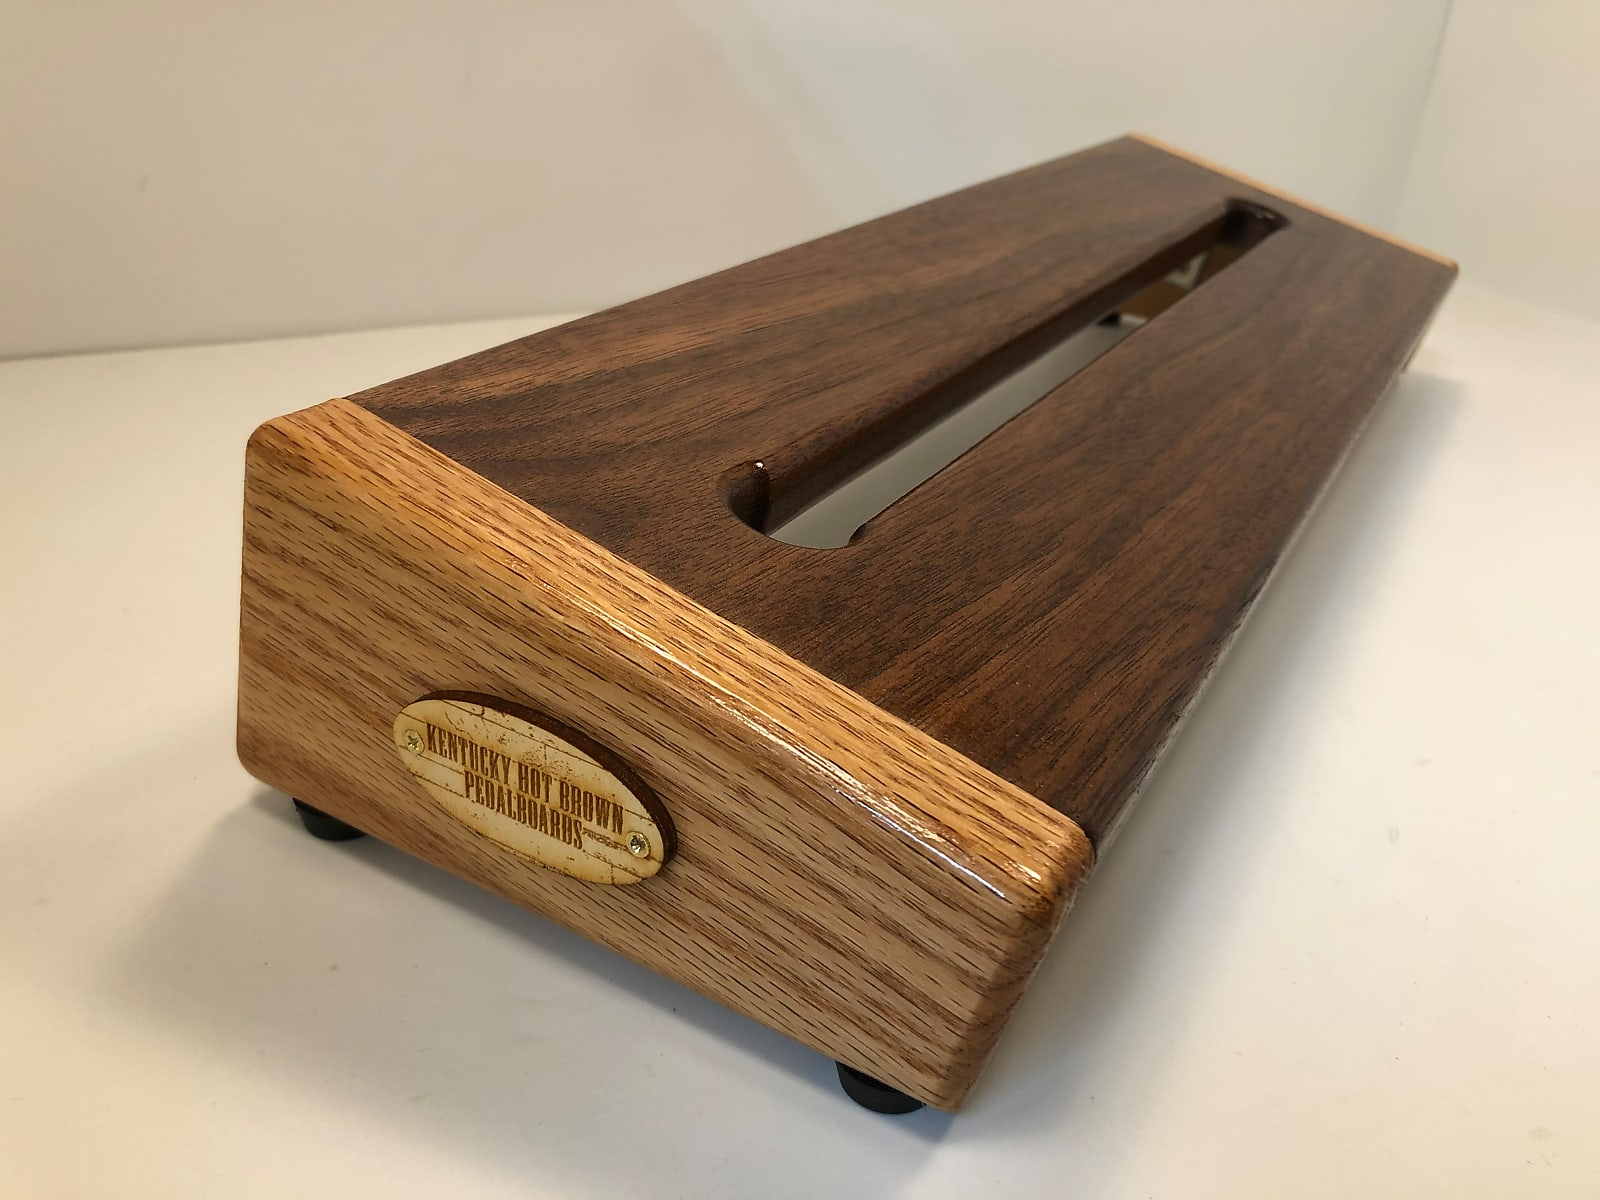 Hot Box Standard Pedalboard - Solid Walnut & Red Oak by KYHBPB - Available Now!